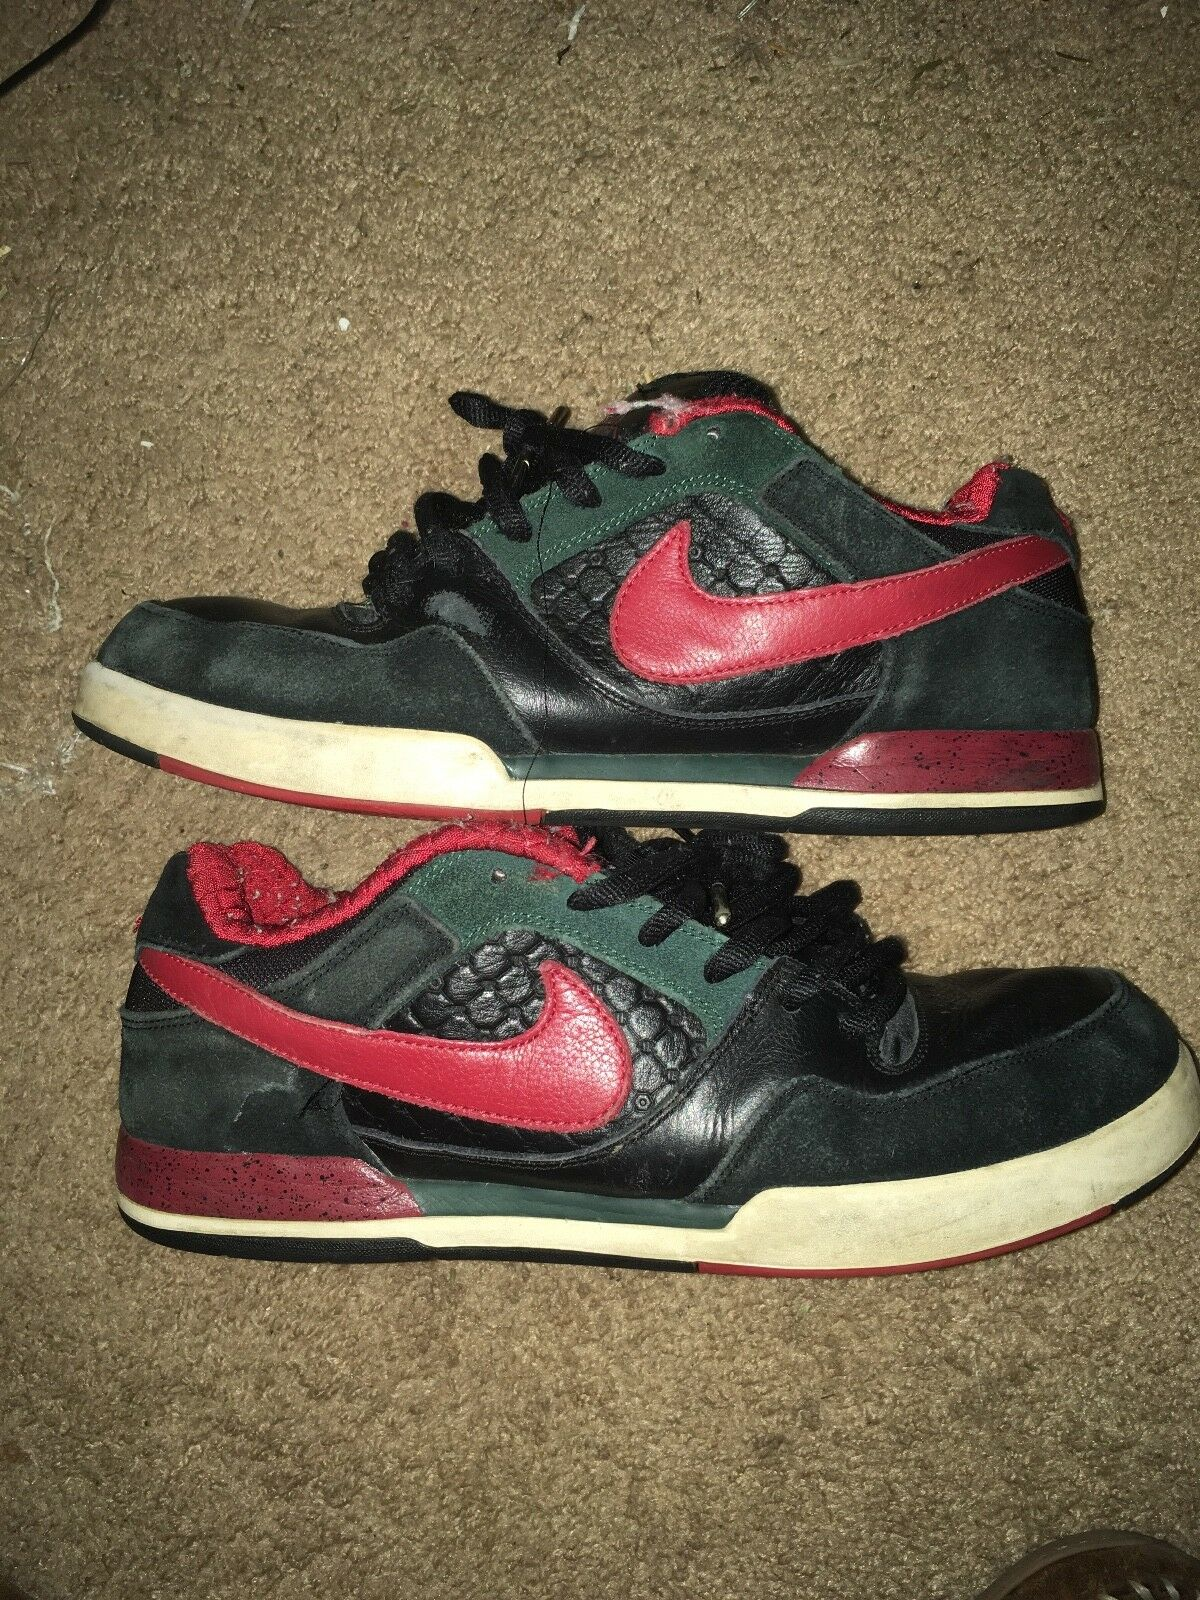 Nike sb P Rod 2 U.S 11.5 Red Black, minor defects from skating,fit new